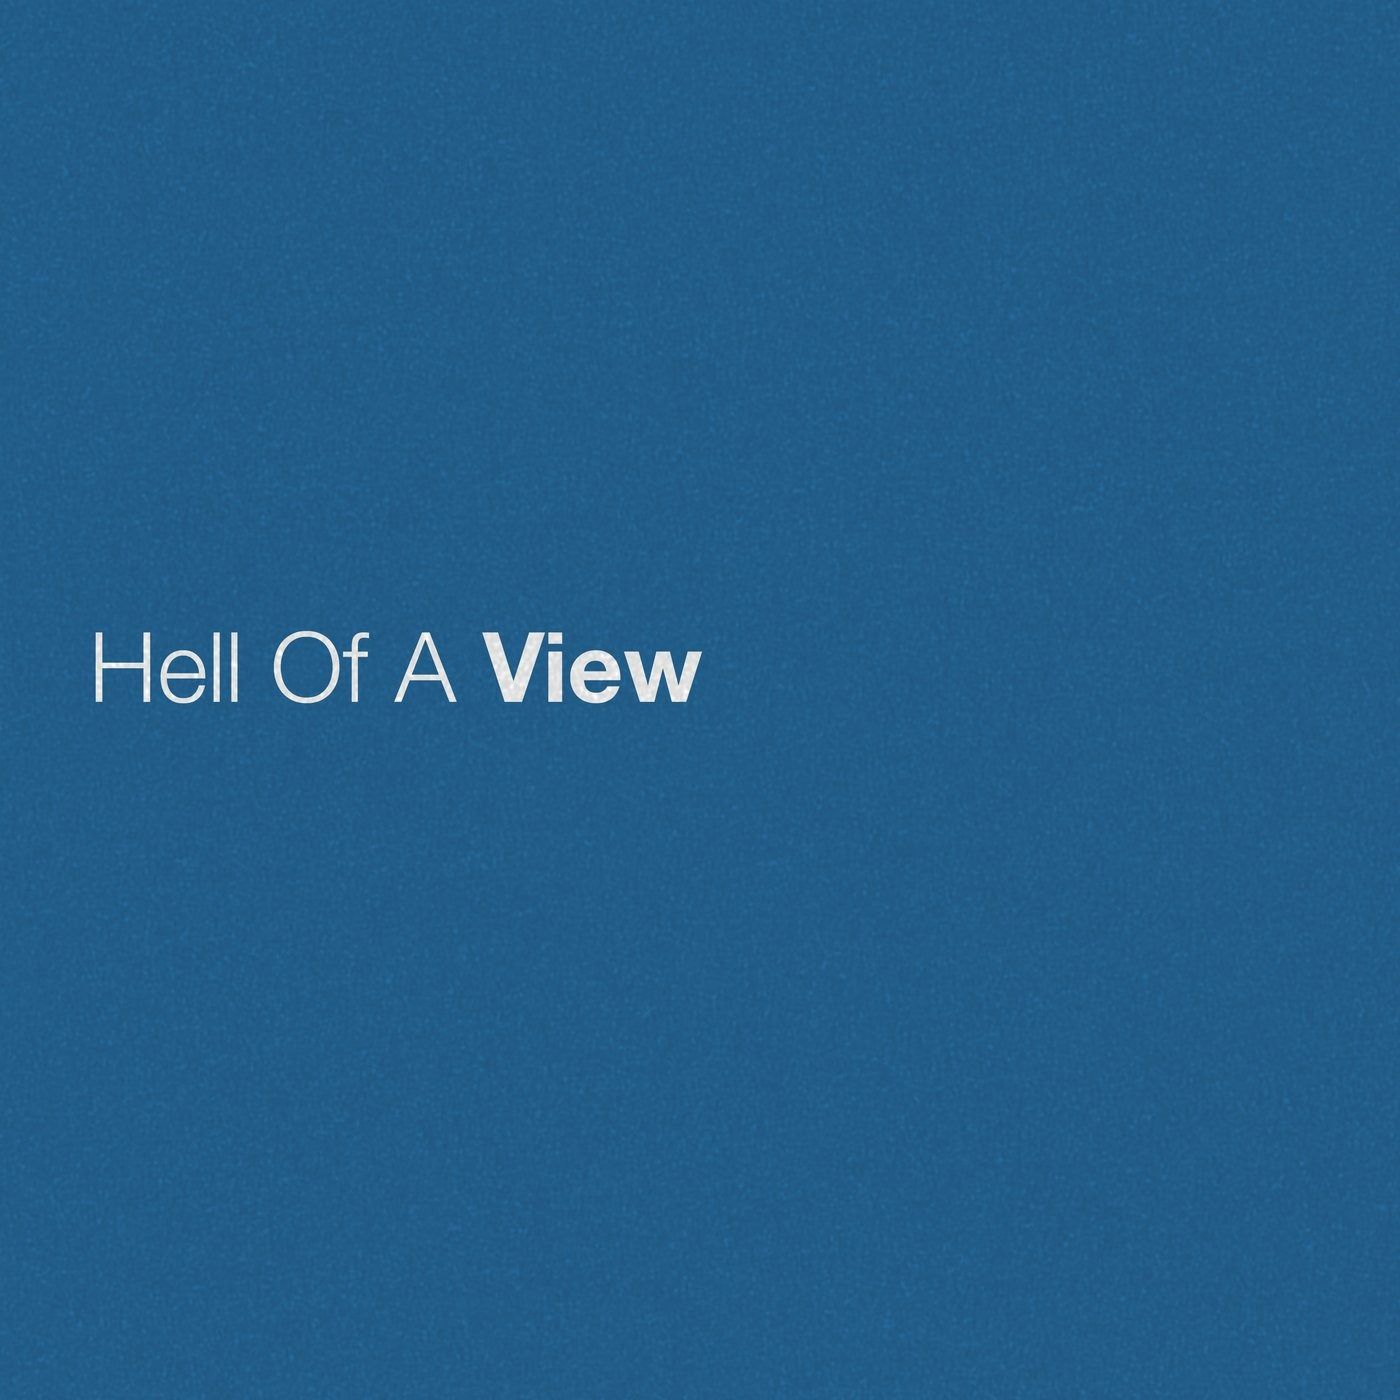 Eric Church - Hell of A View - Single Cover